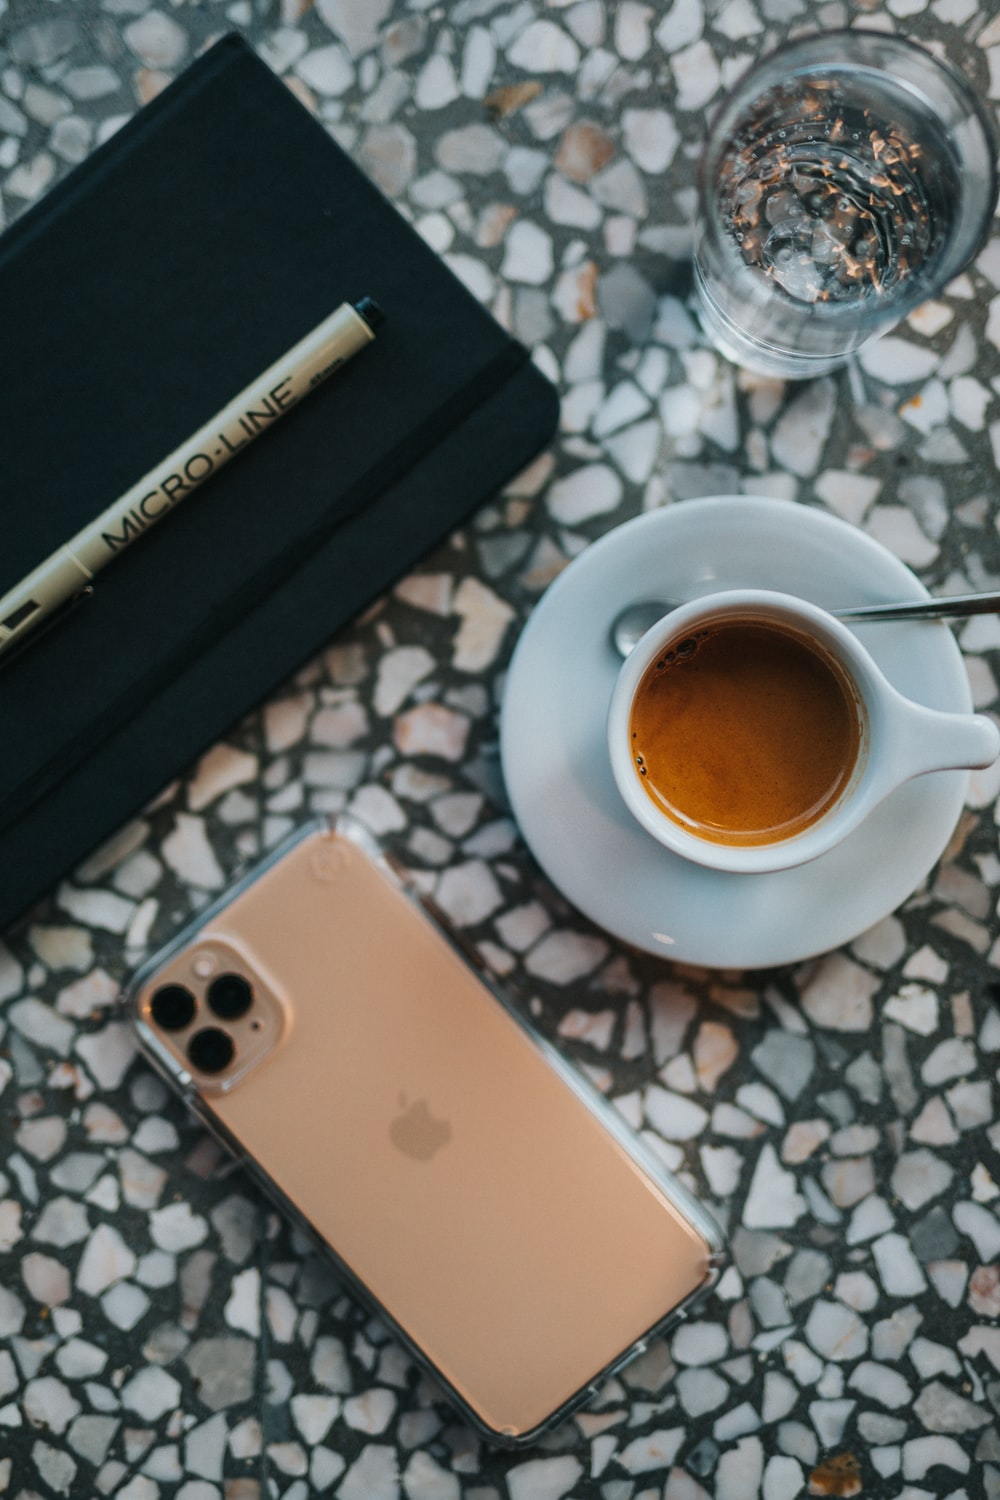 gold iPhone 11 beside cup on table